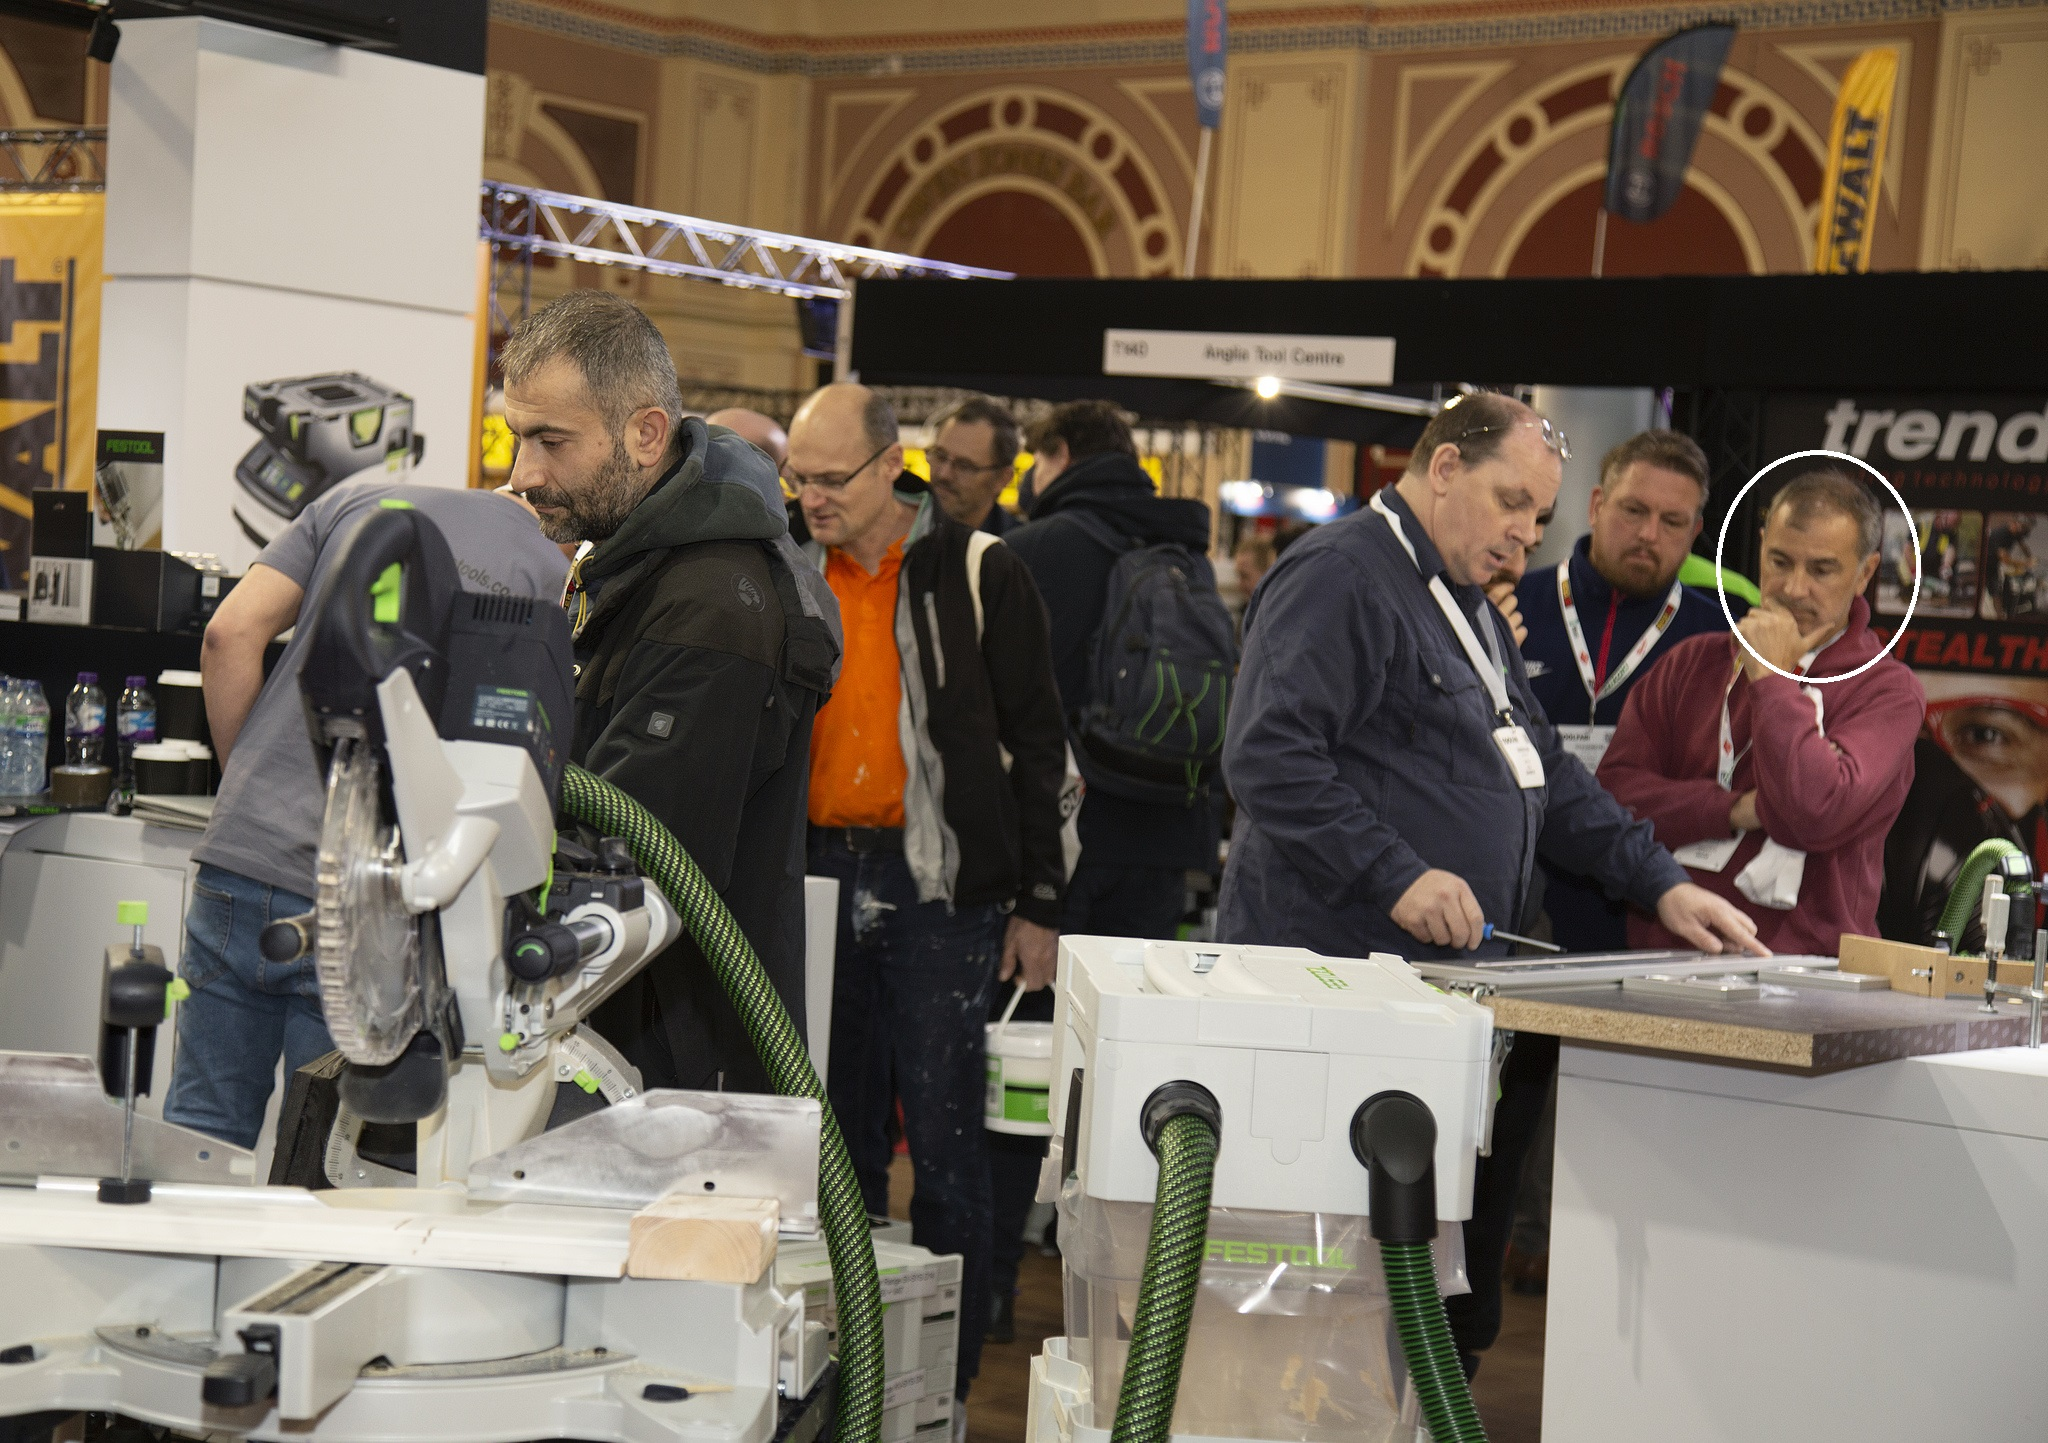 Toolfair giveaway – face in the crowd!